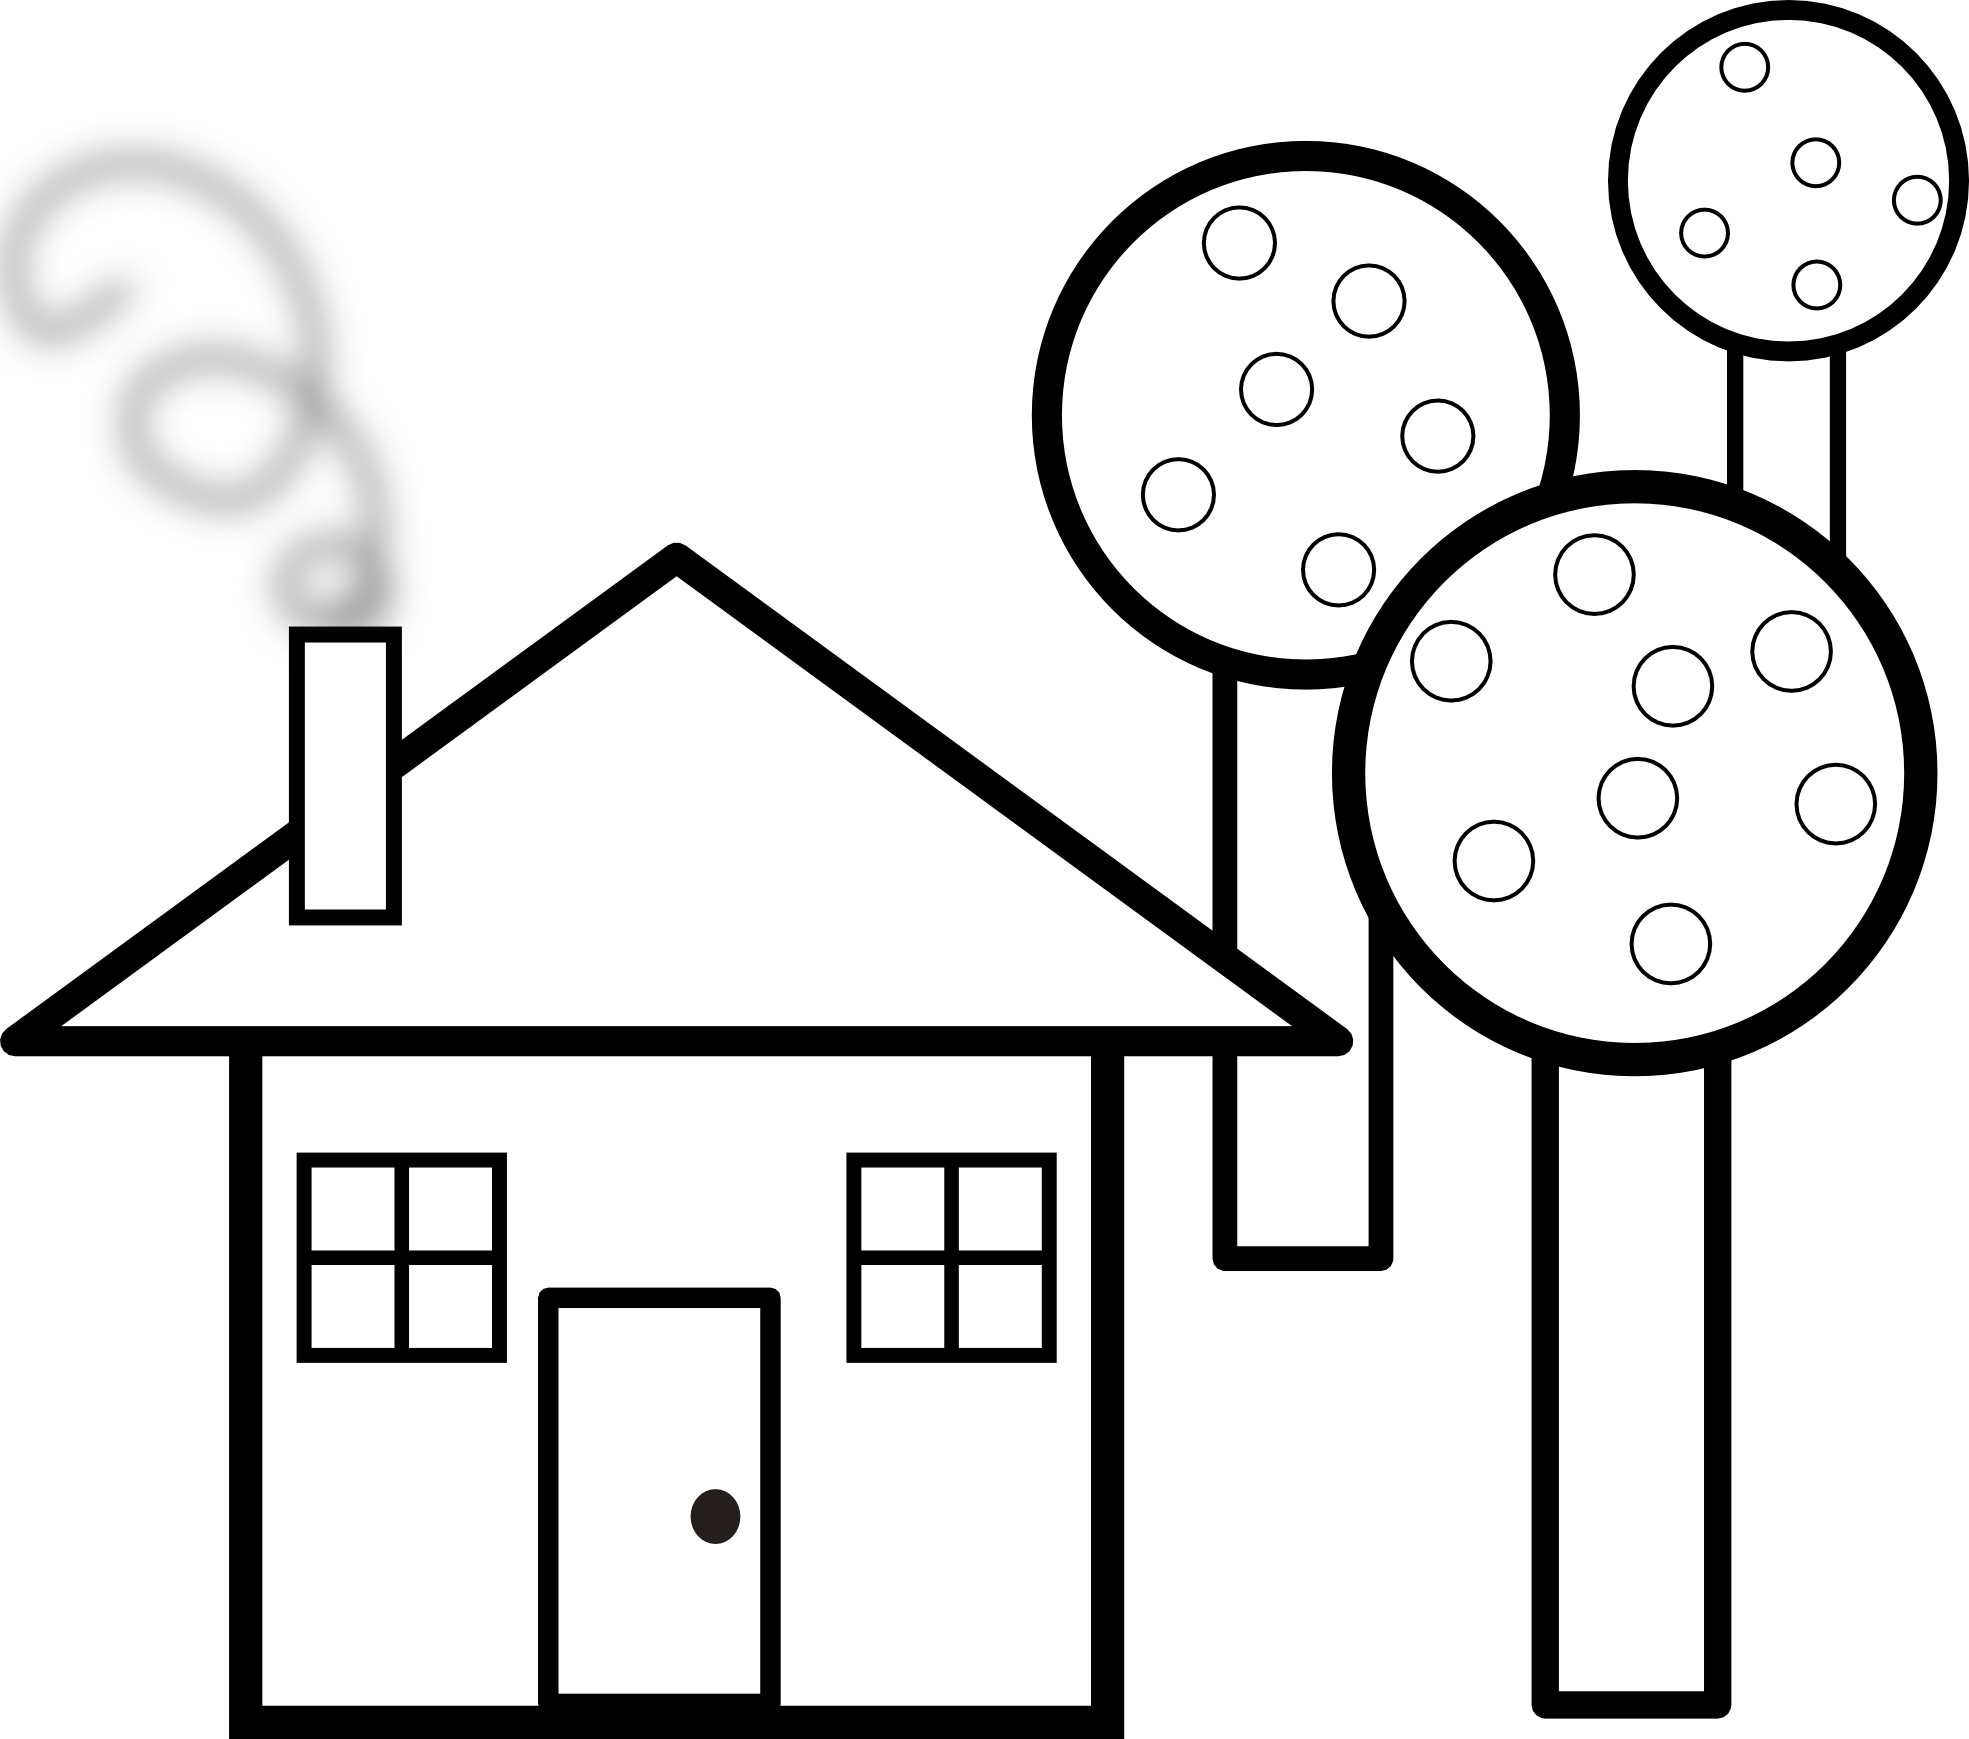 haunted%20house%20clipart%20black%20and%20white